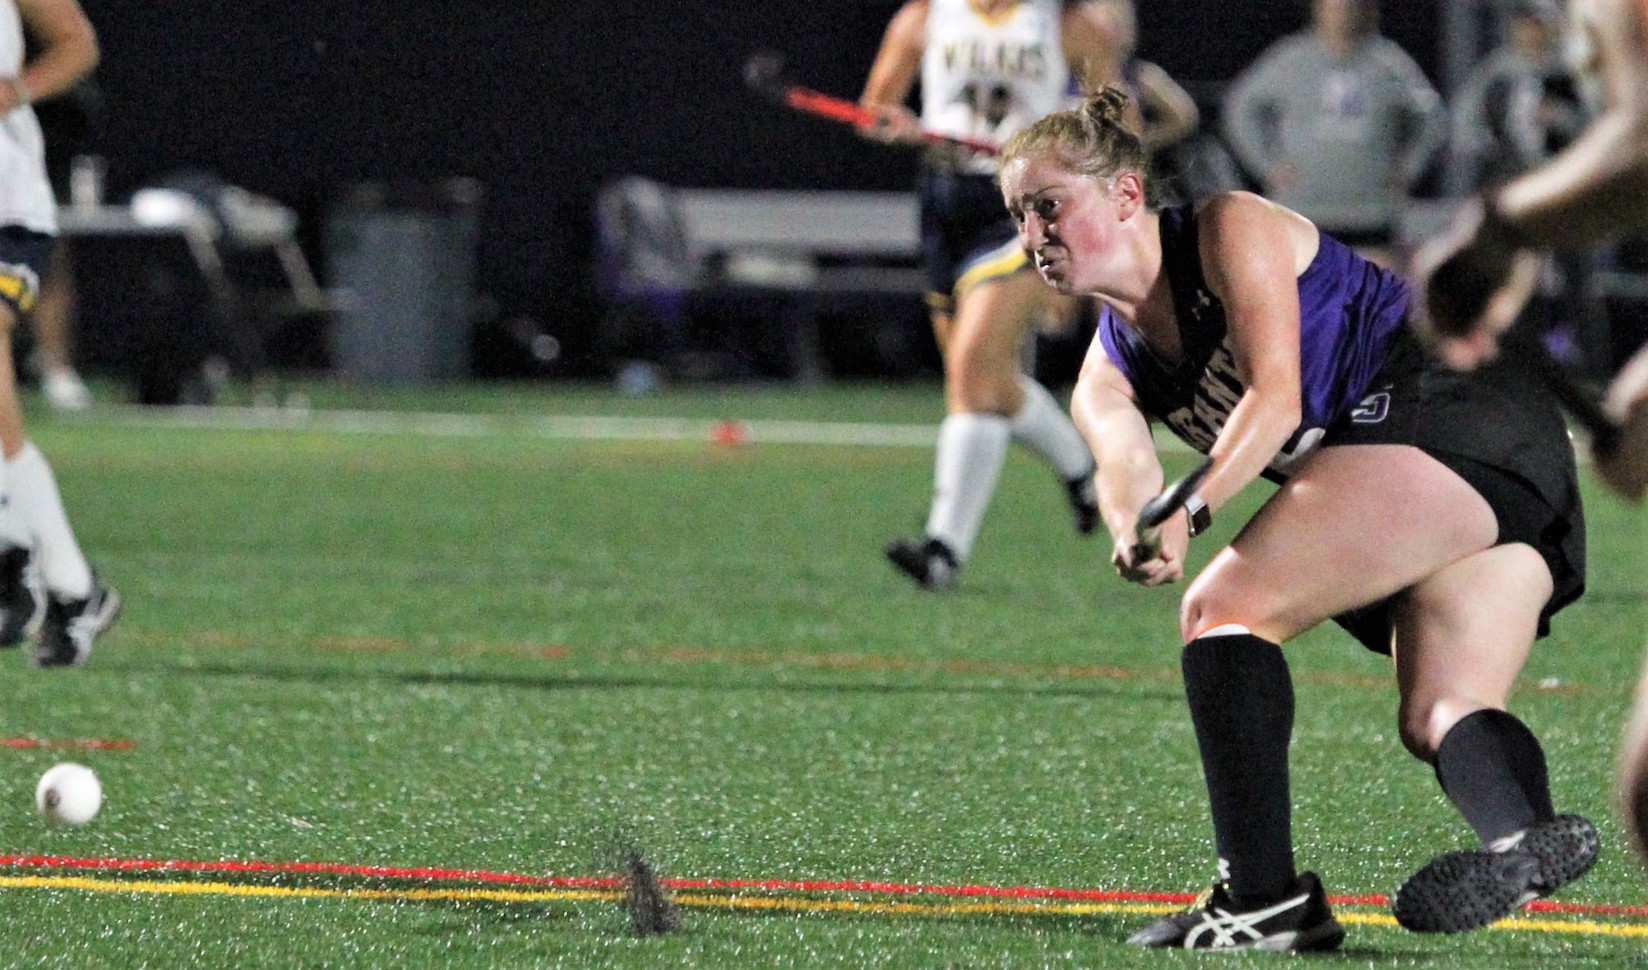 Second Half Surge by Susquehanna Takes Down Field Hockey on the Road, 3-0